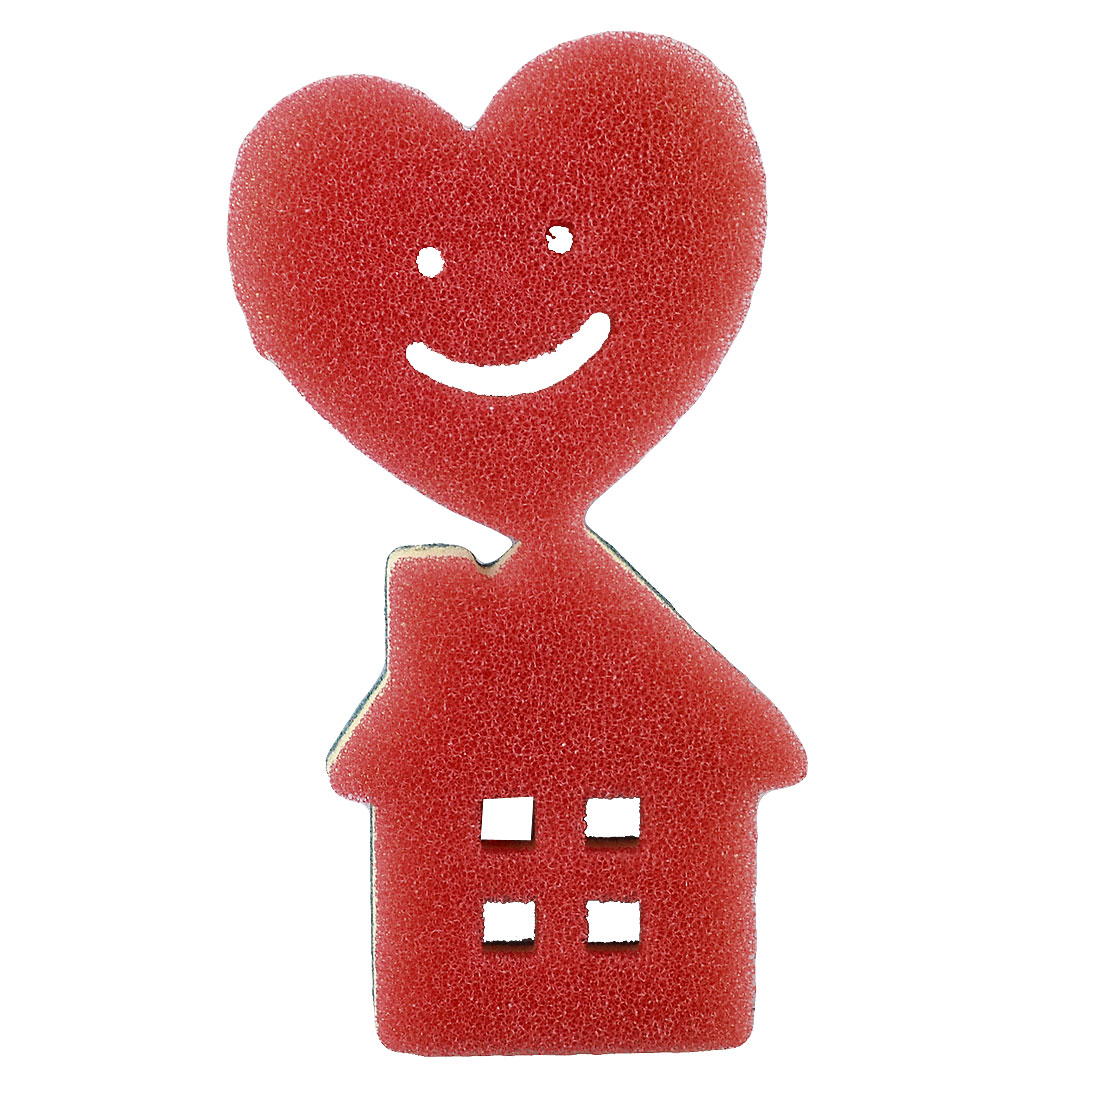 Kitchen Cartoon Heart House Design Tri Colors Dish Cleaning Sponge Scouring Pad